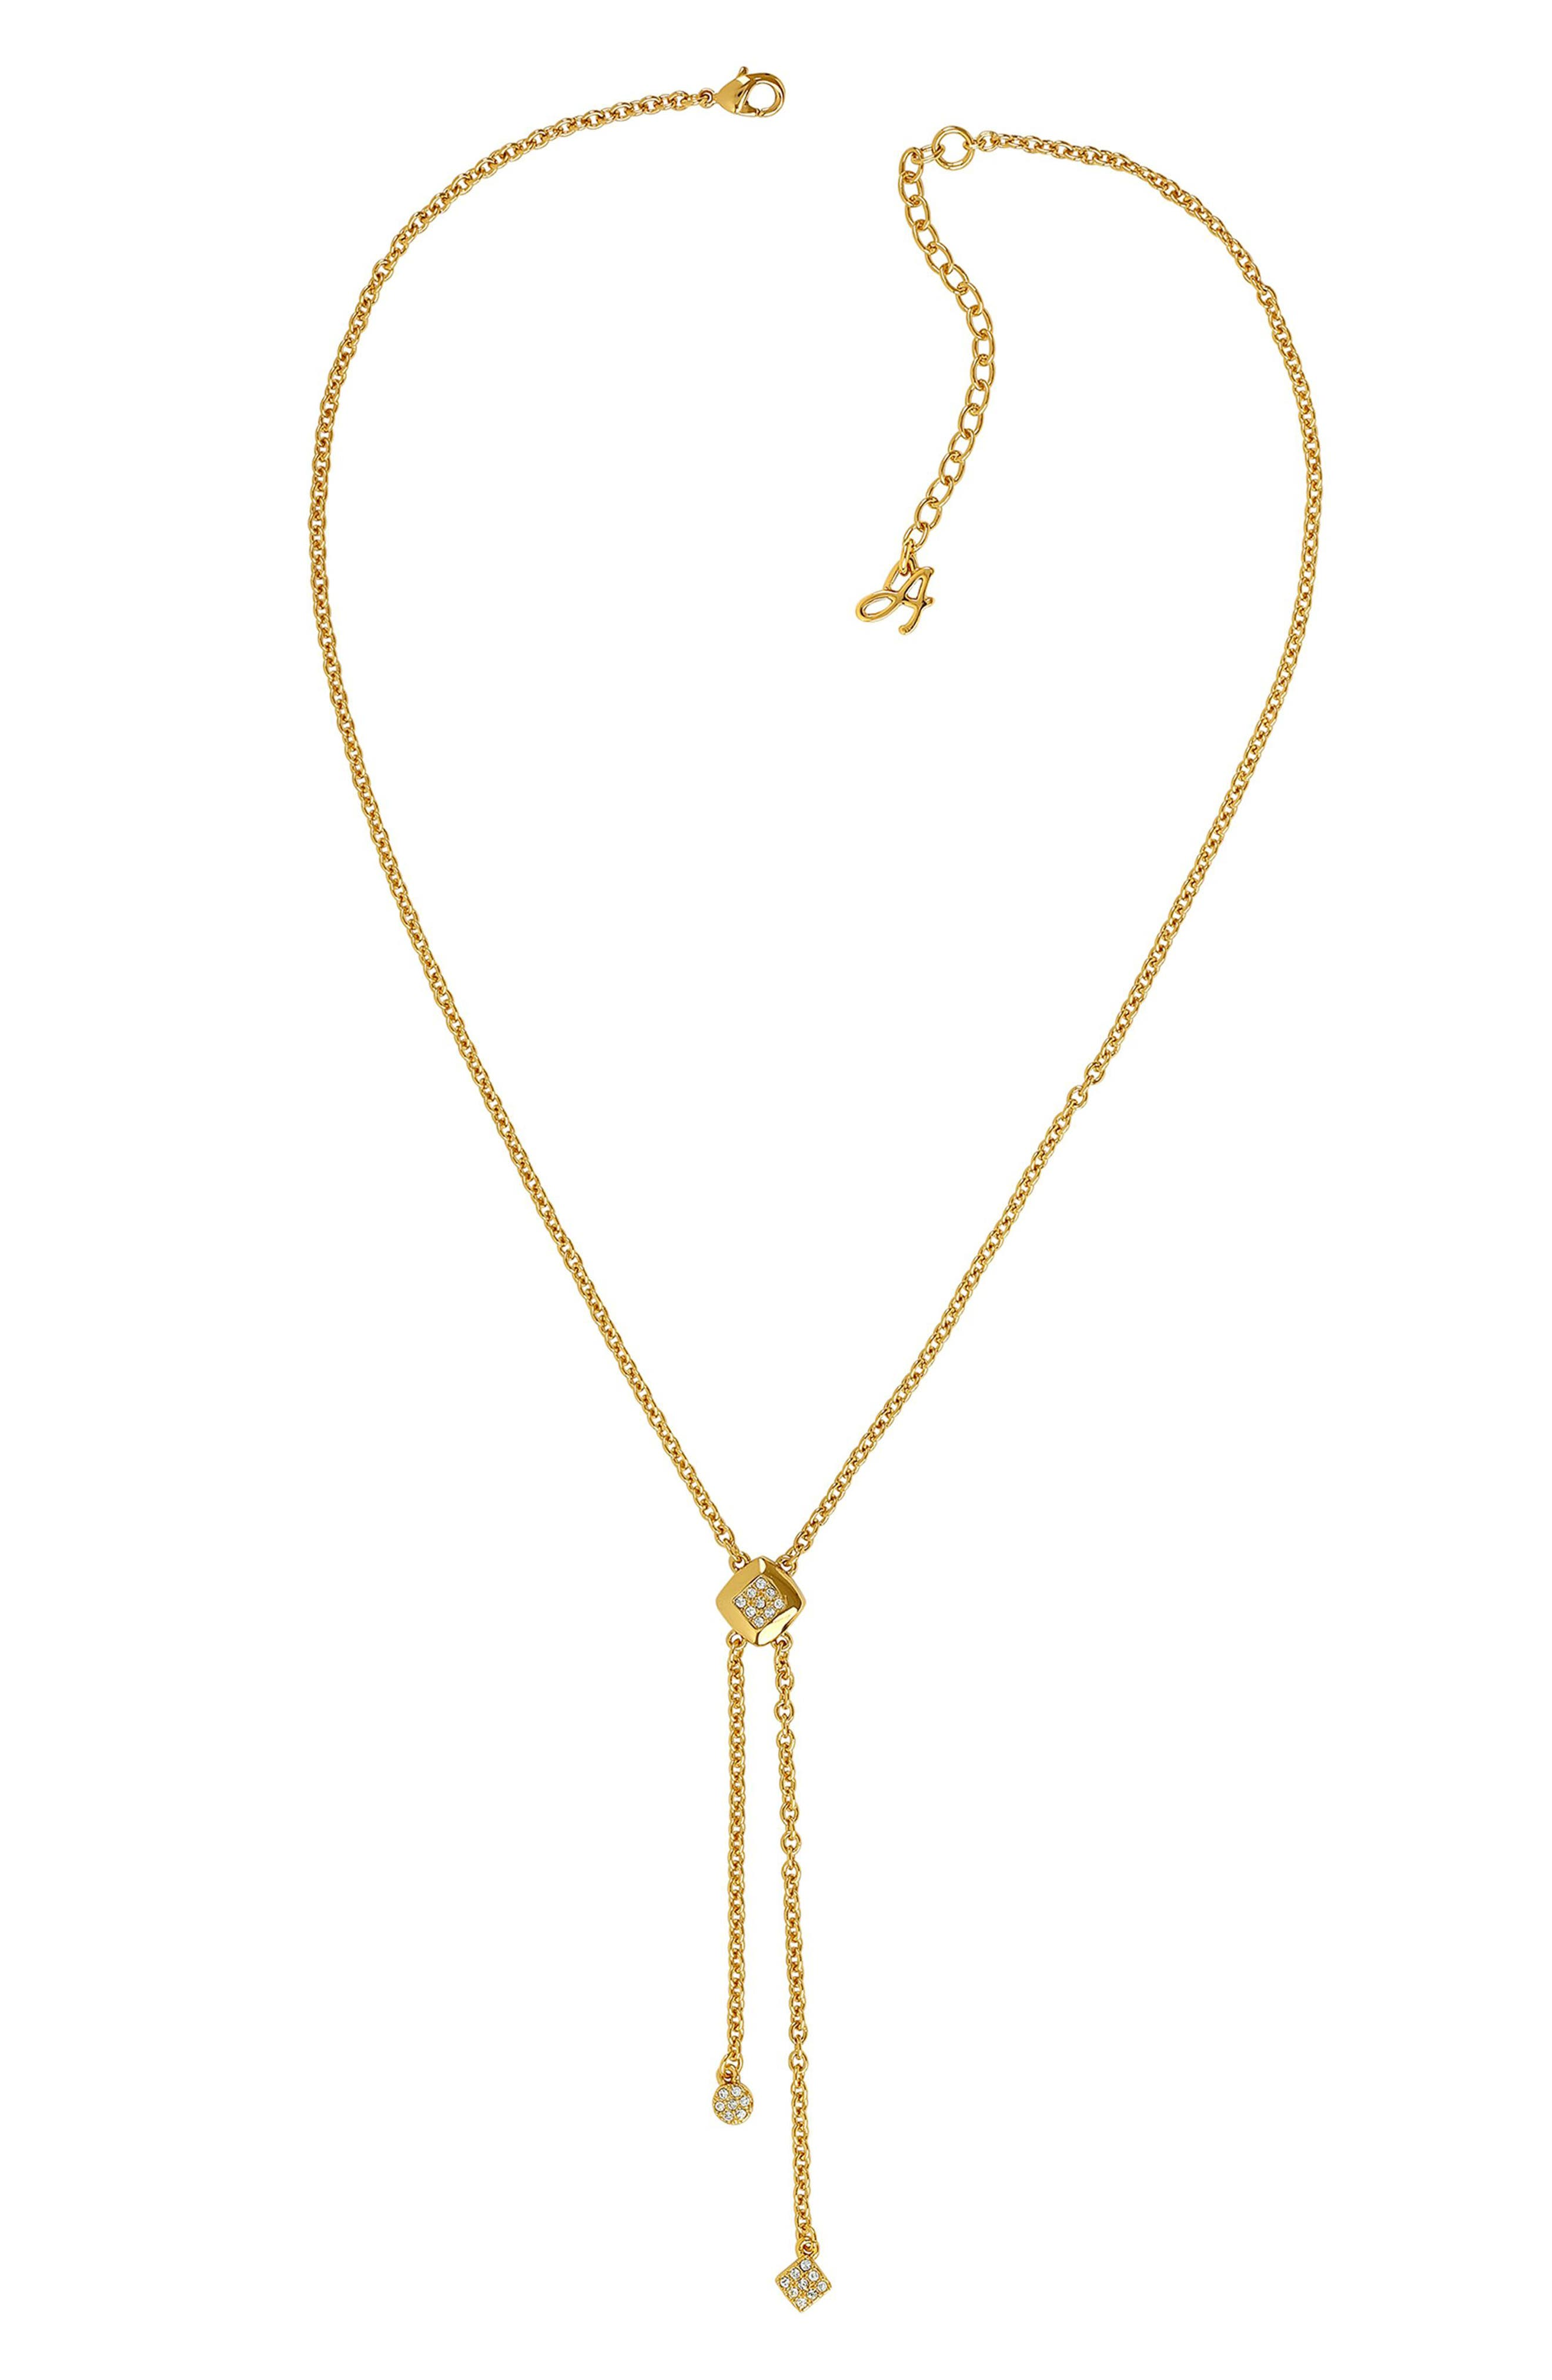 ADORÉE Pave Accent Y Necklace, 16 in Gold